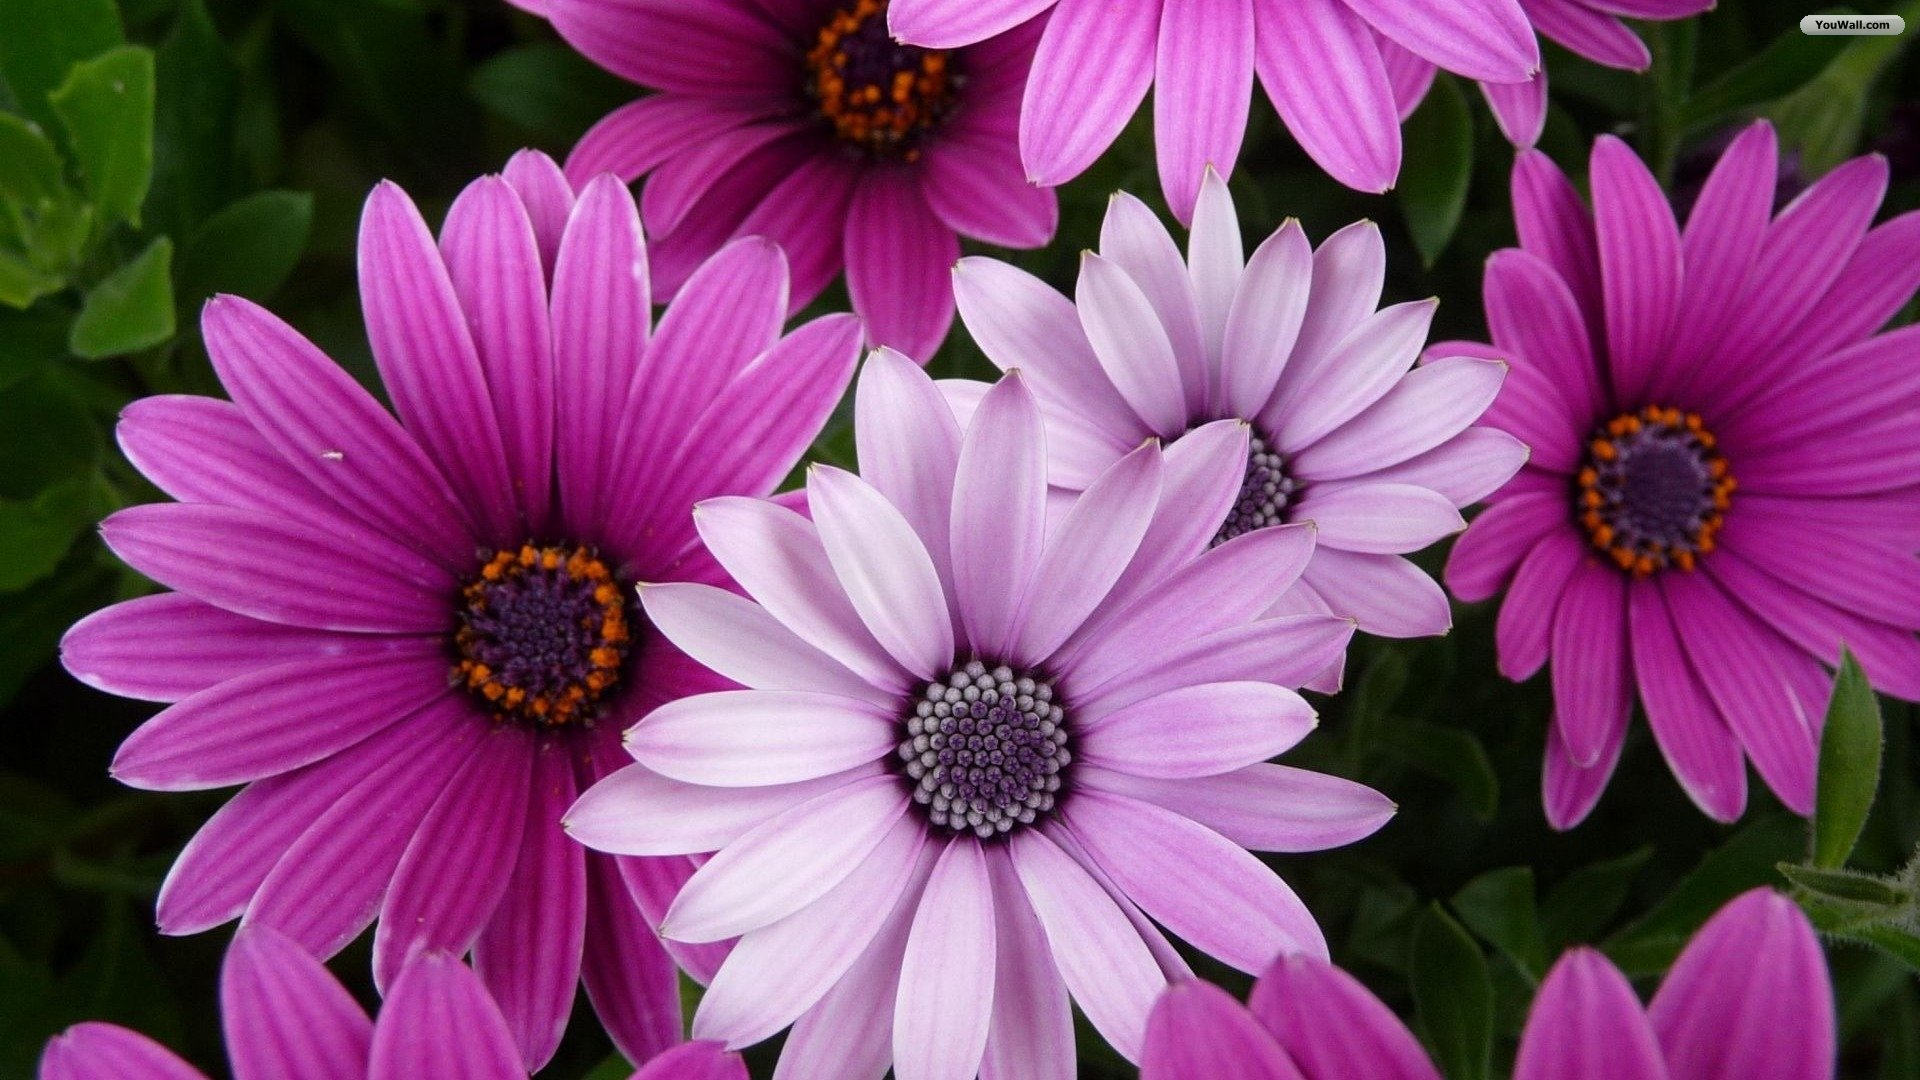 181626-beautiful-purple-flowers-desktop